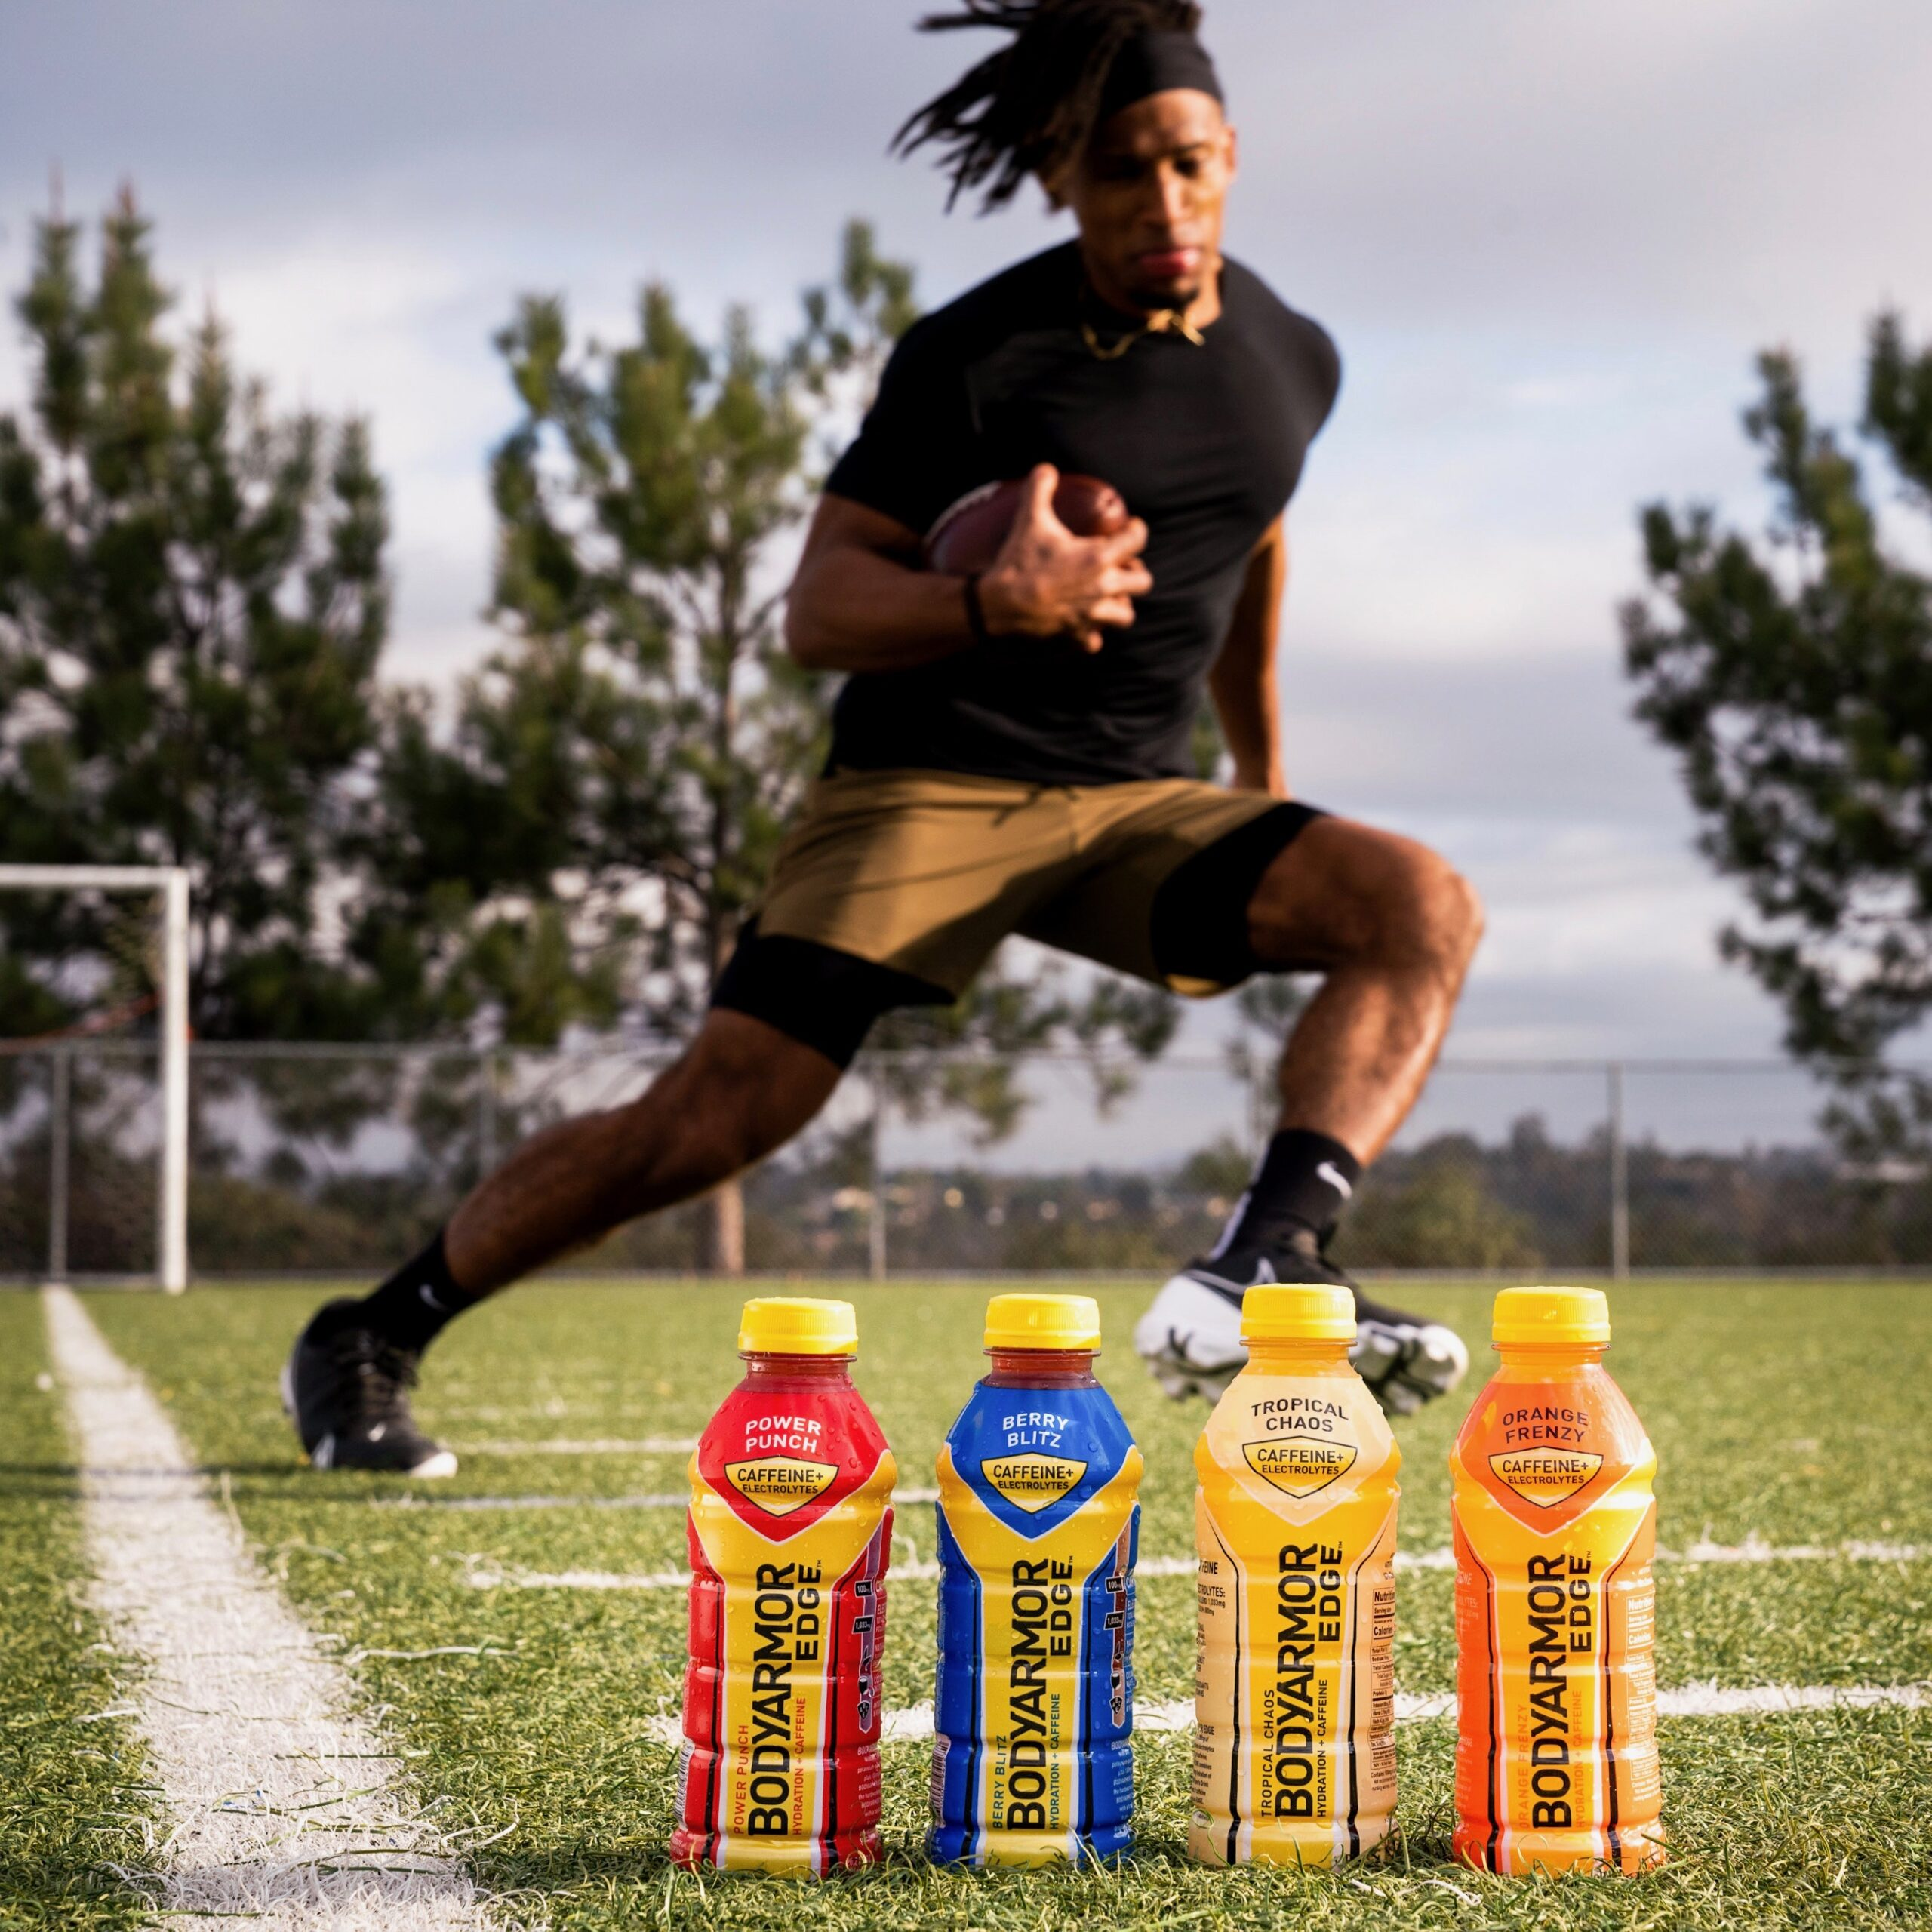 BODYARMOR EDGE sports drink